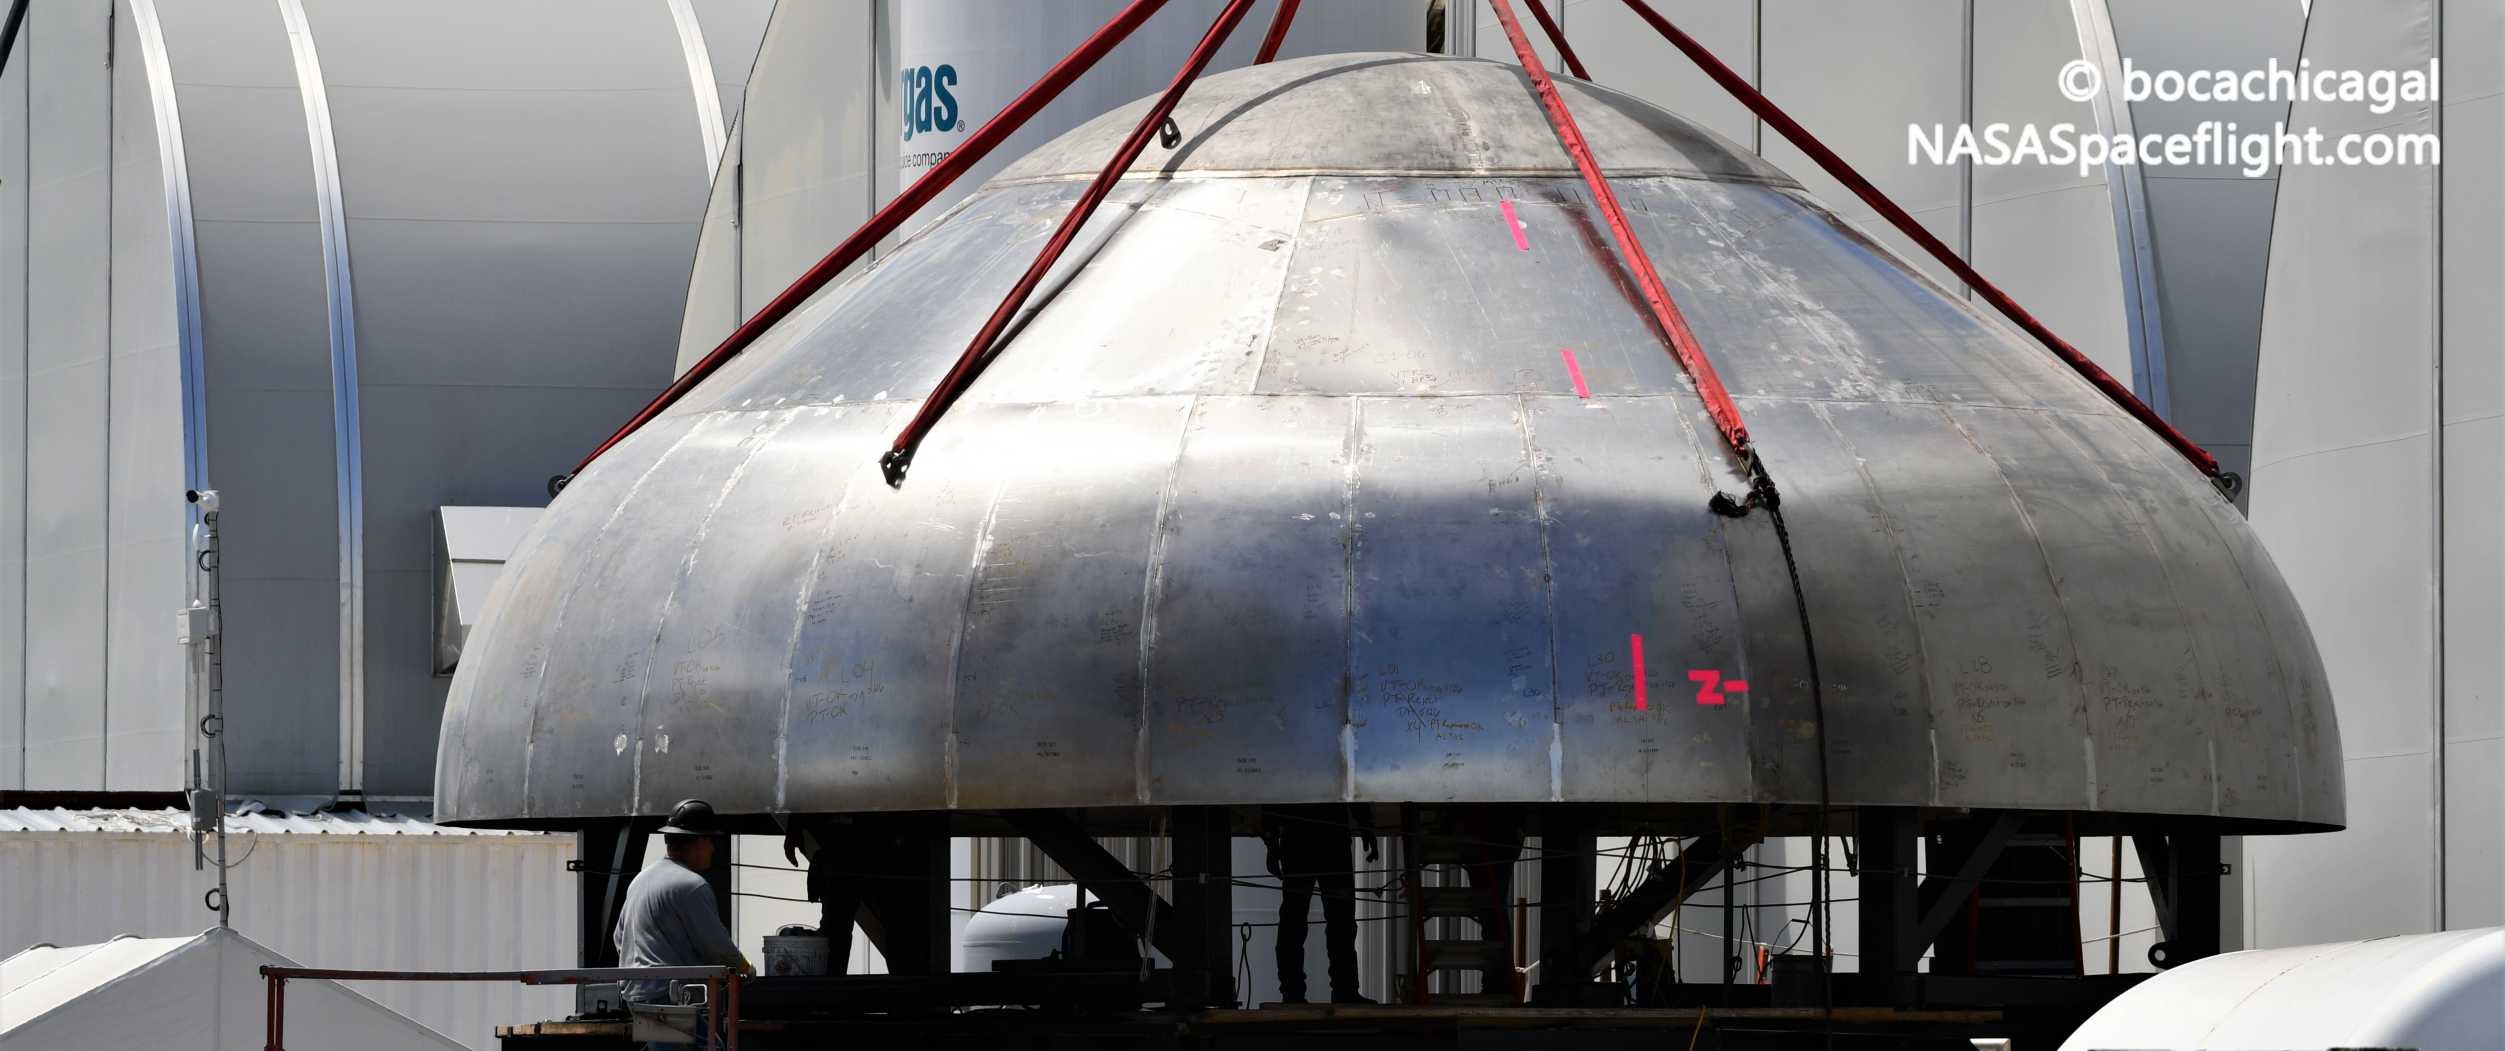 Starship Boca Chica 060120 (NASASpaceflight – bocachicagal) new upper dome 5 crop (c)